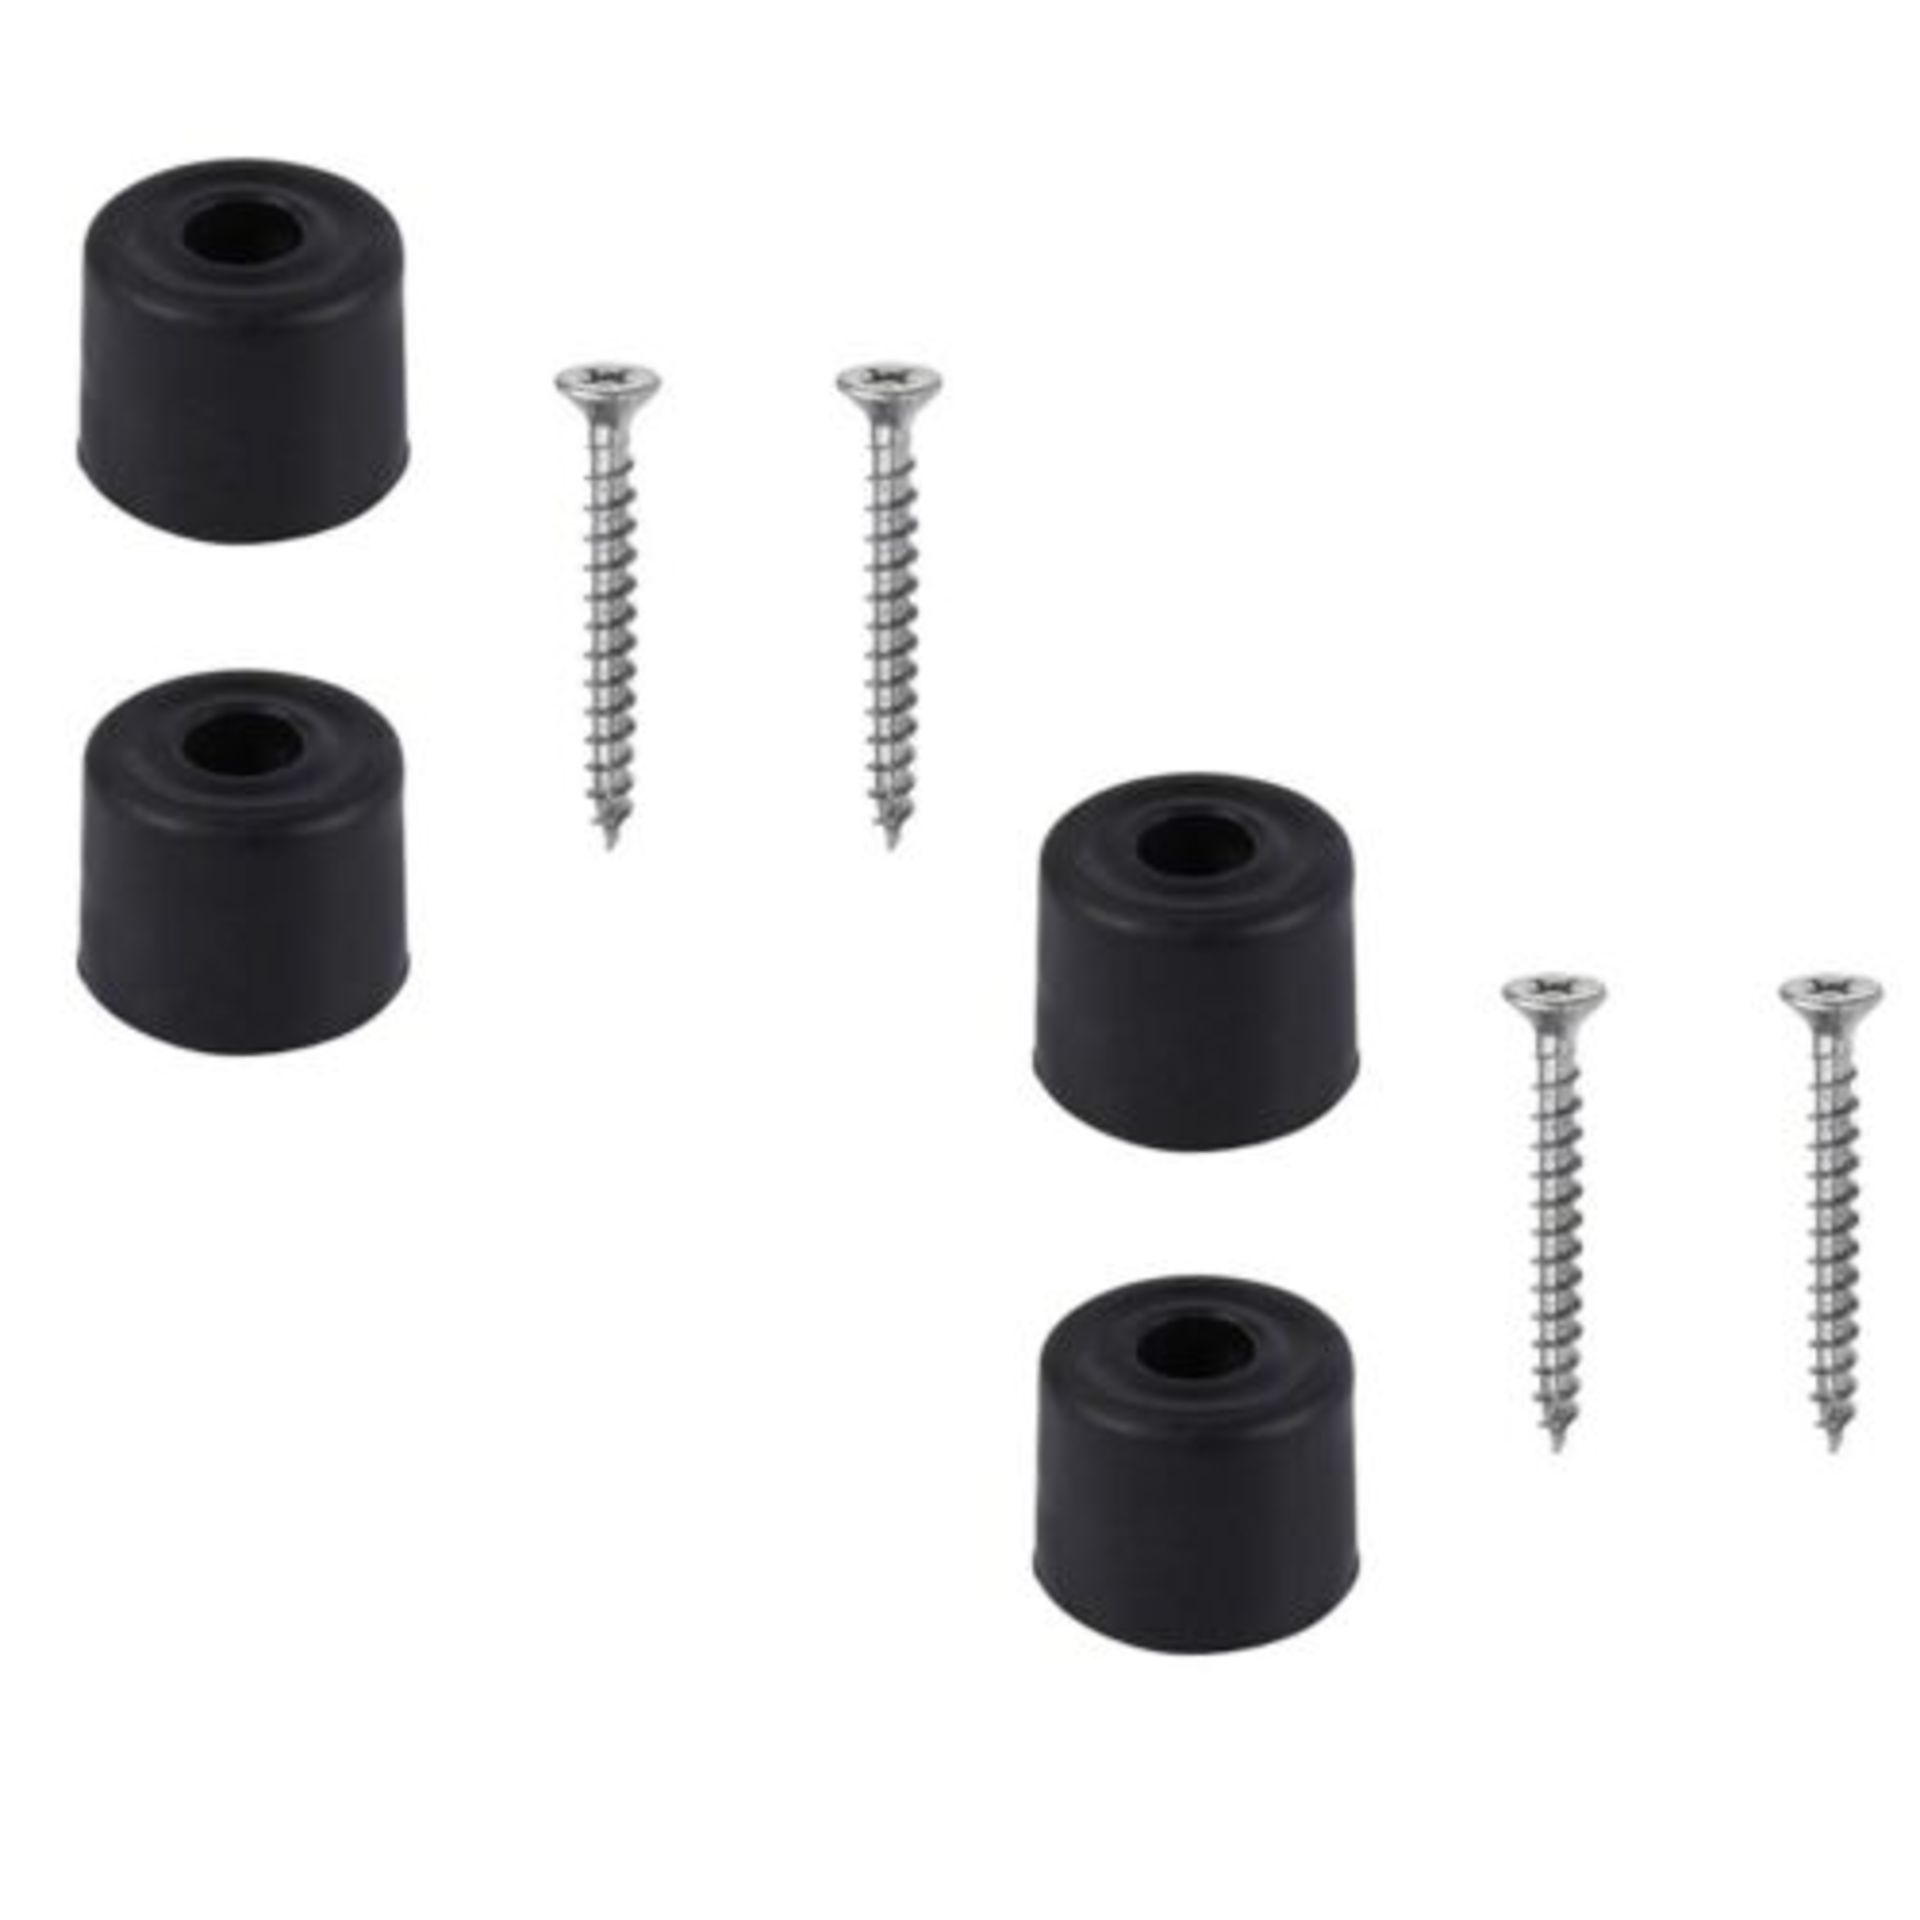 Lot 31 - 20x Door Stops Black Inc. Screws